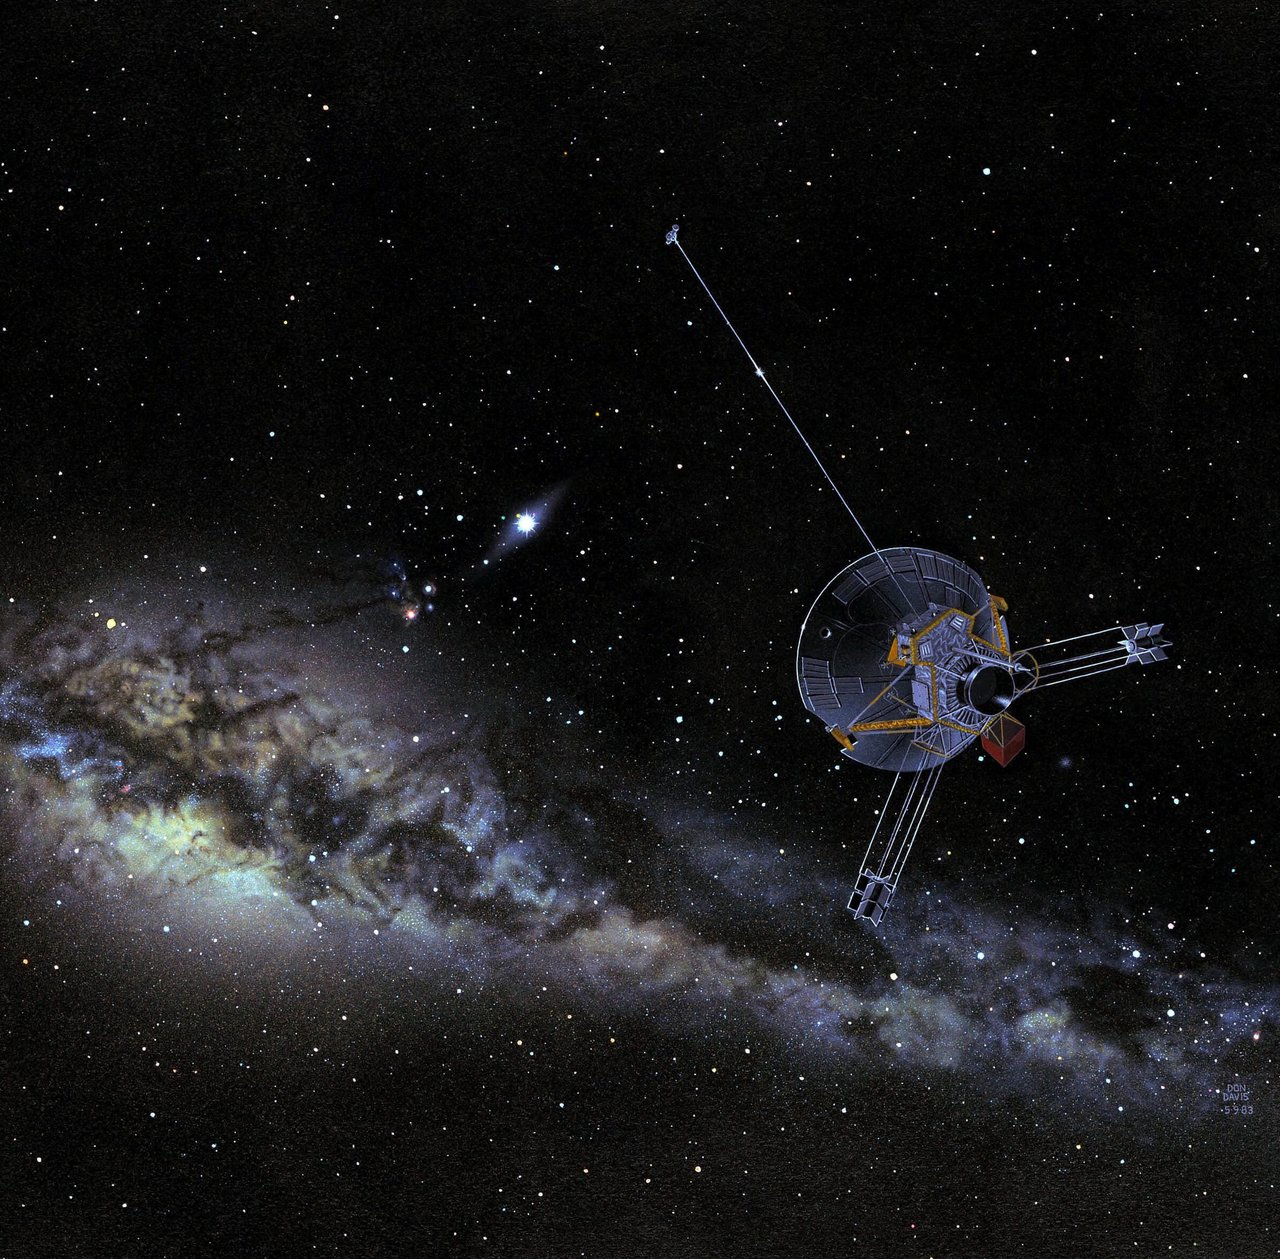 Spacecraft with Milky Way in background.